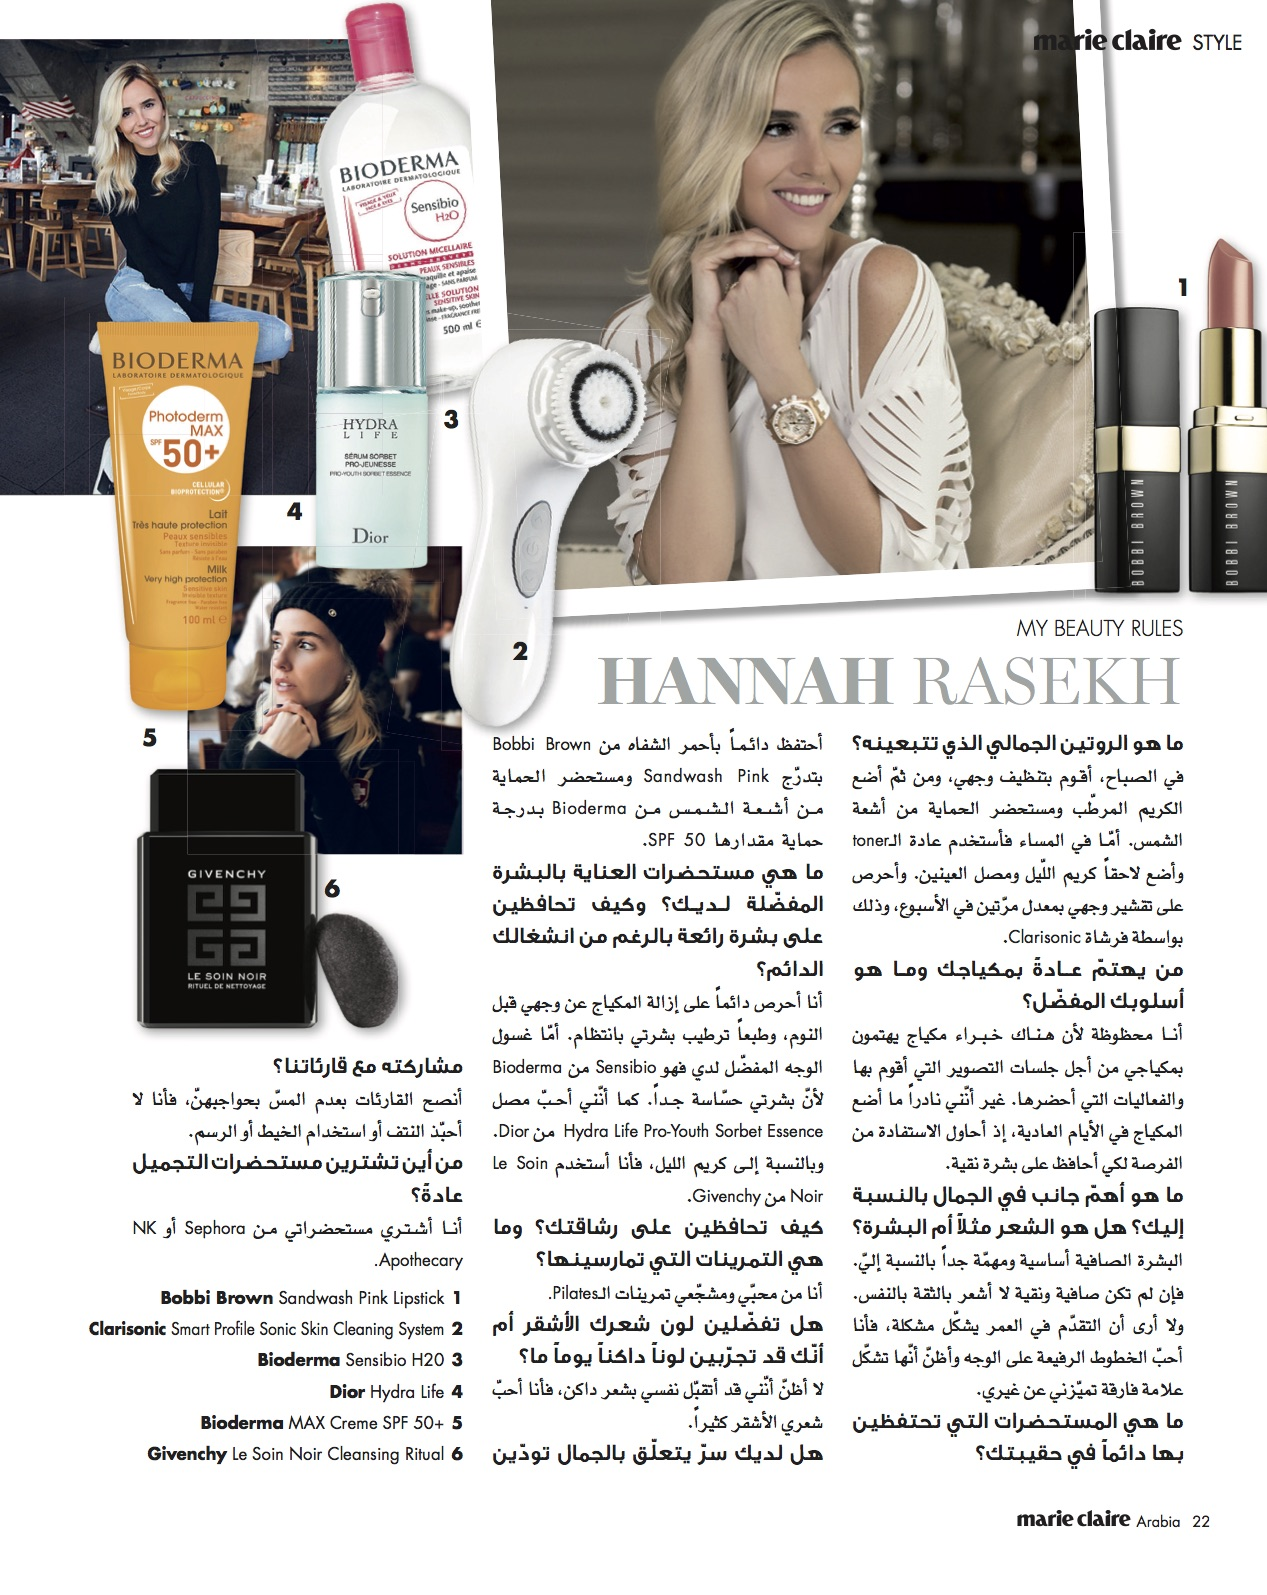 hannah-rasekhs-beauty-routine